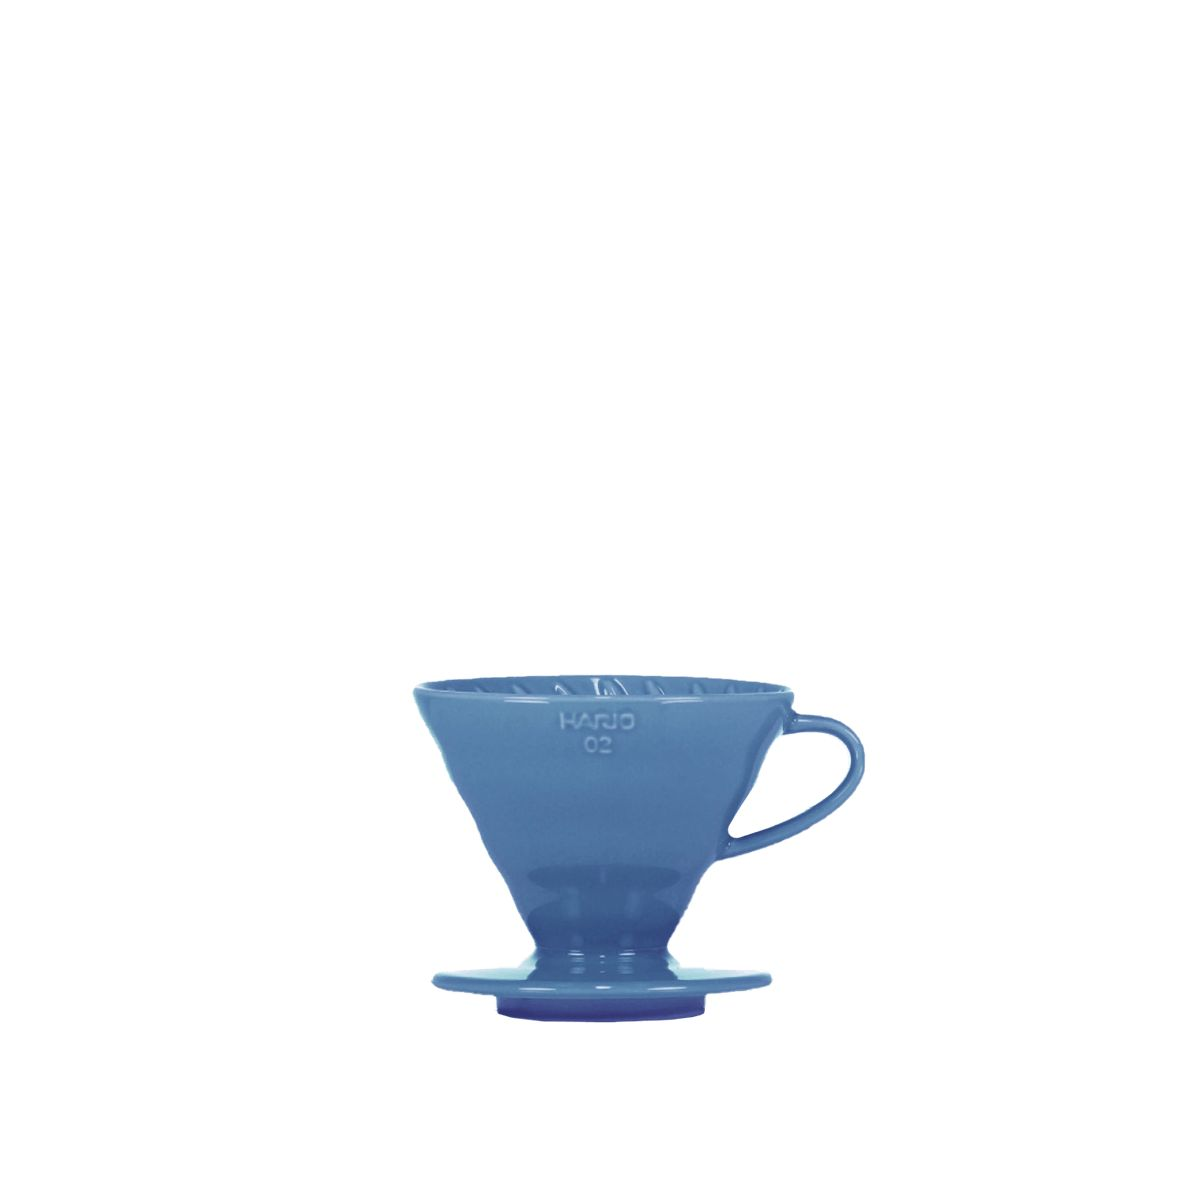 V60 Porcelain Dripper Hario [3/4 cups] - Blue